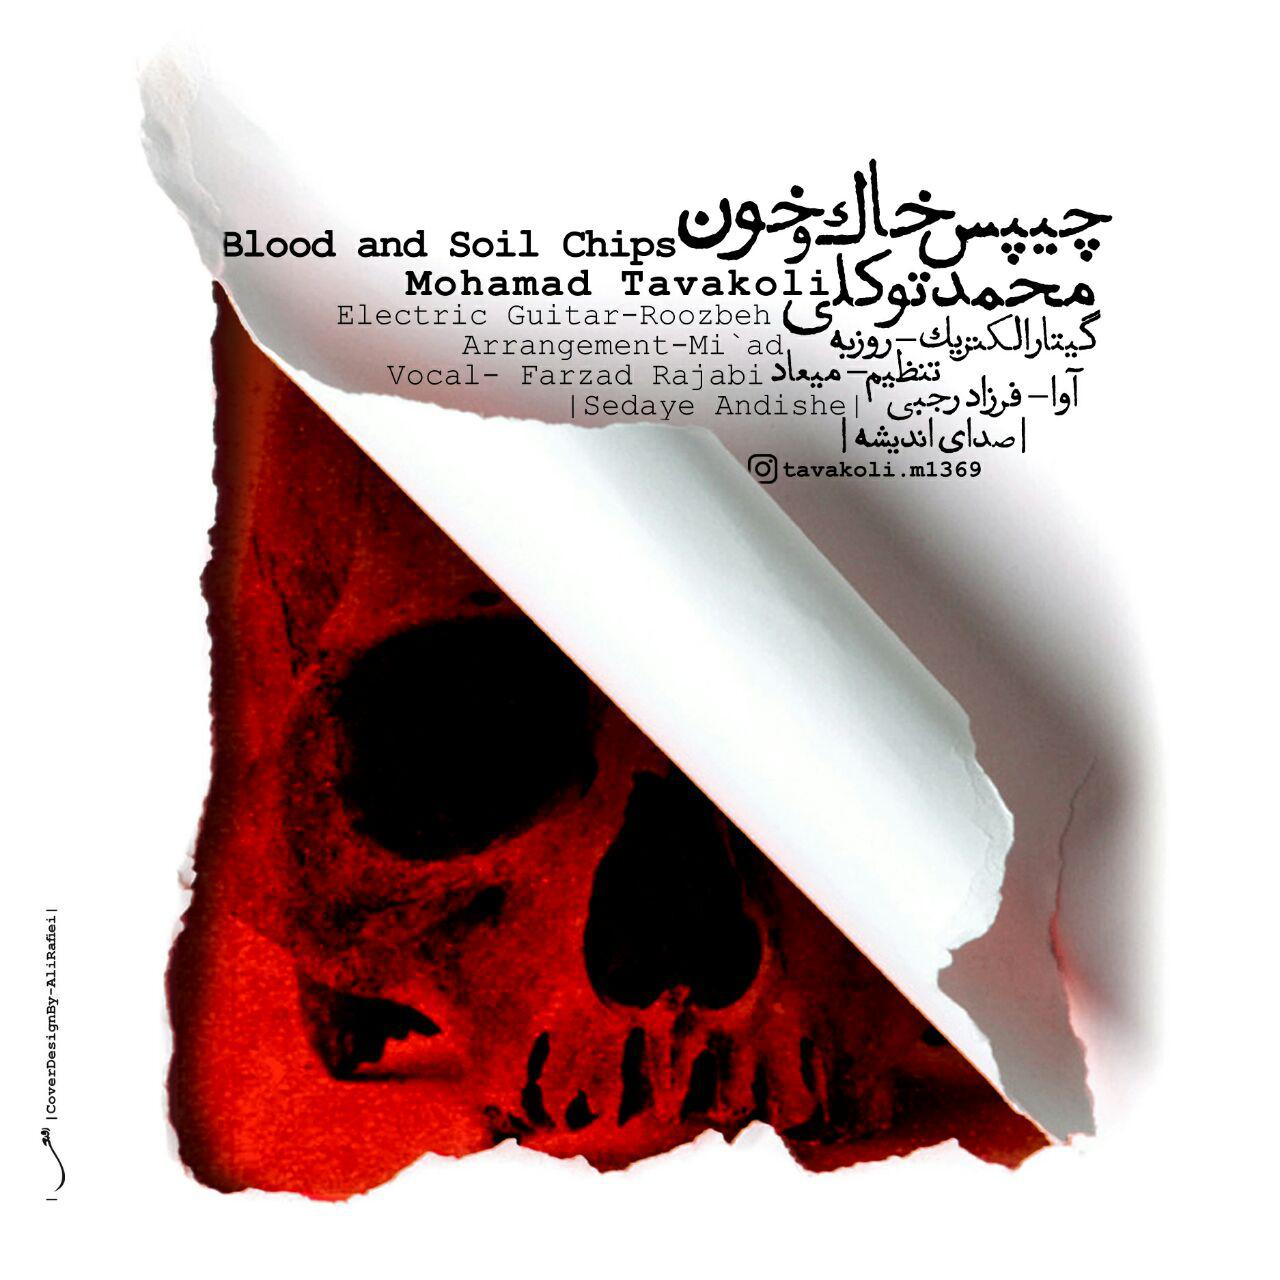 Mohamad Tavakoli - Blood And Soil Chips